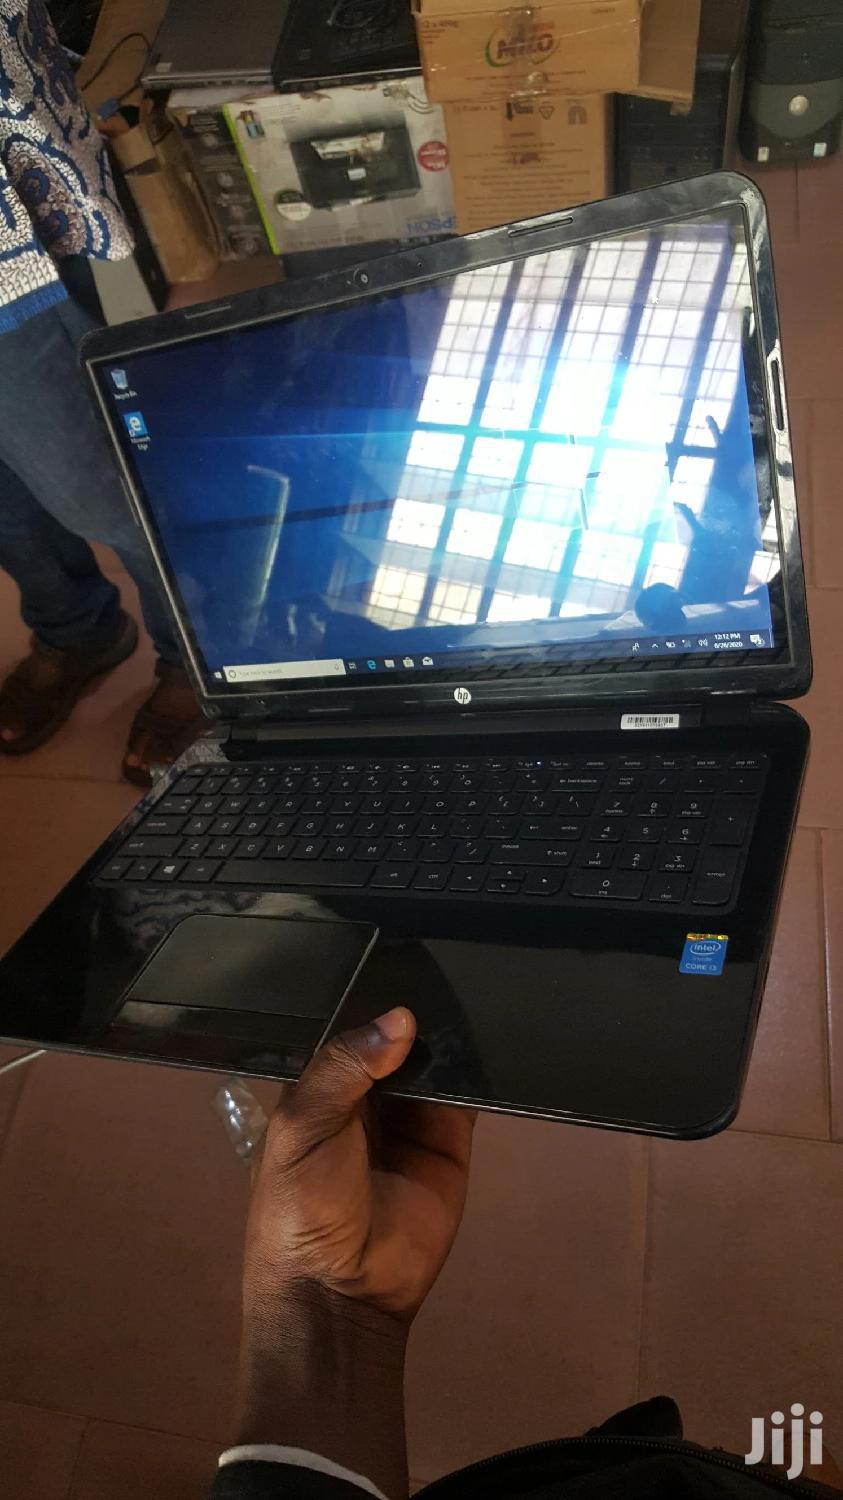 Laptop HP Pavilion X360 15t 6GB Intel Core I3 HDD 250GB | Laptops & Computers for sale in Tamale Municipal, Northern Region, Ghana